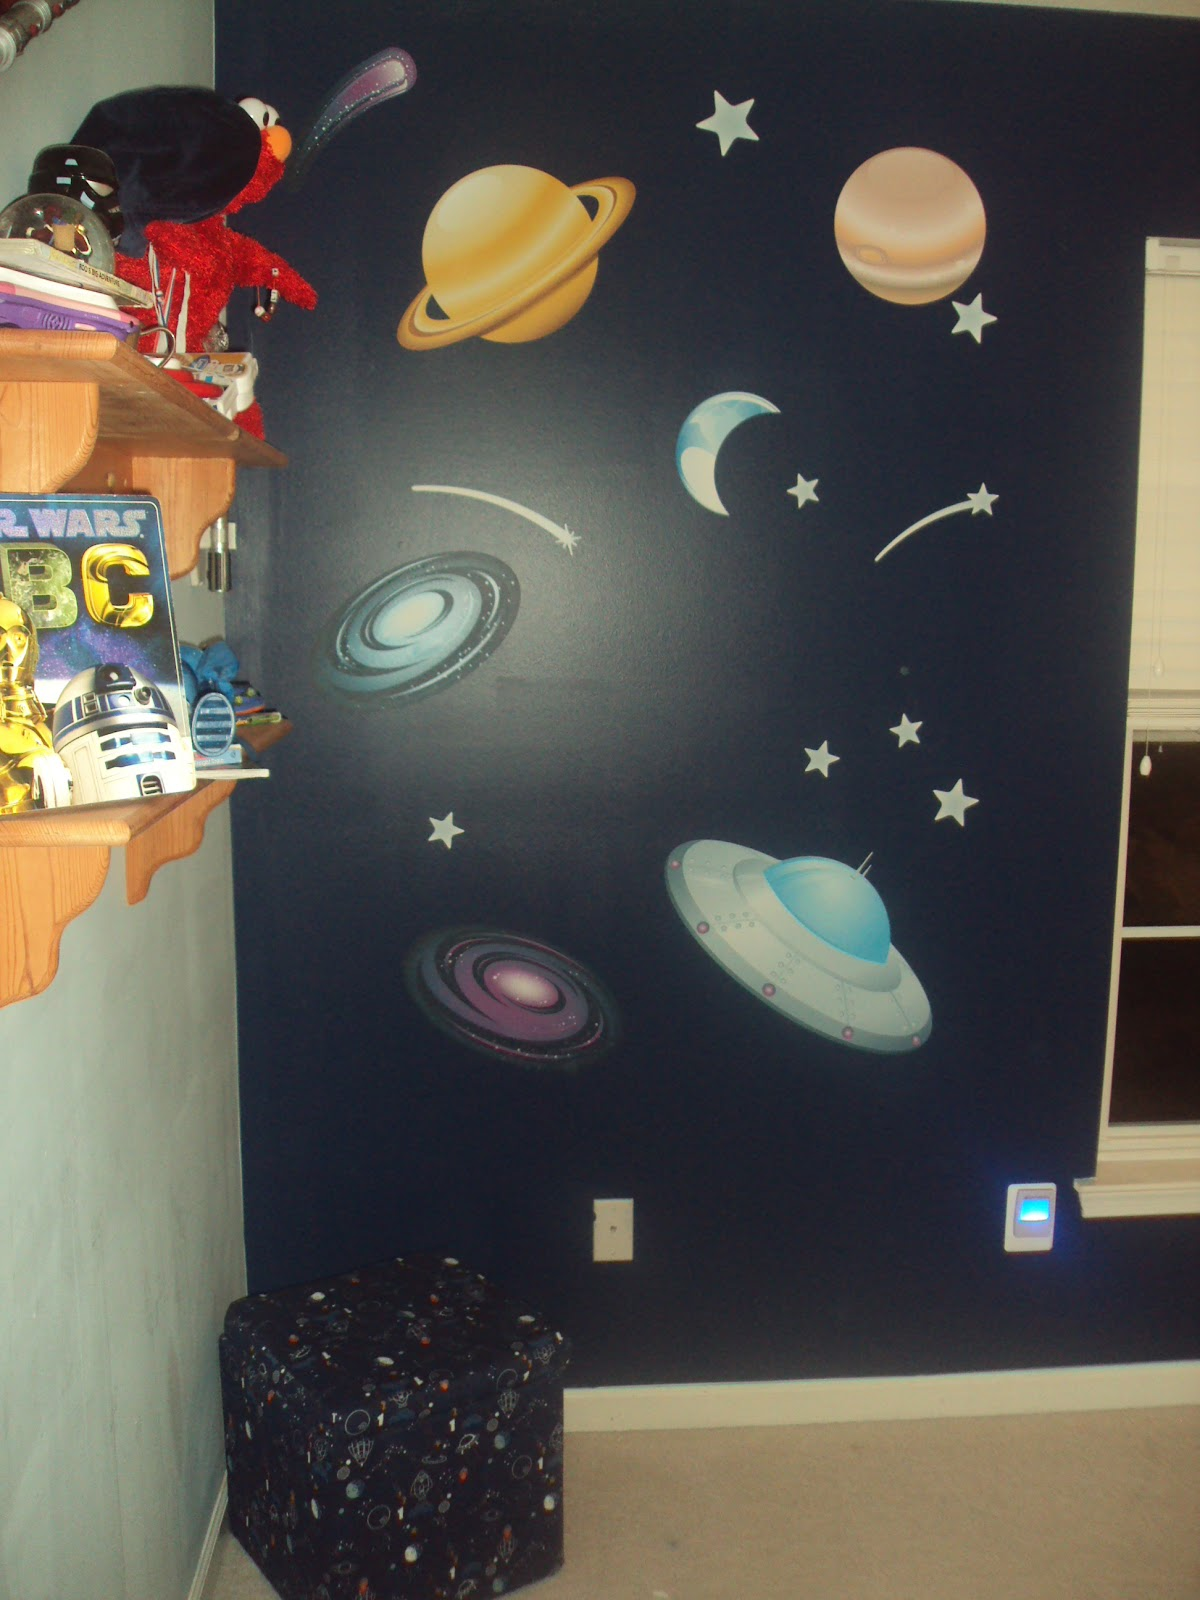 fathead outer space wall graphic collection wall graphics for when we first opened up the wall graphic sheet lt was so proud the decals were all great sizes and the colors were vibrant and varying